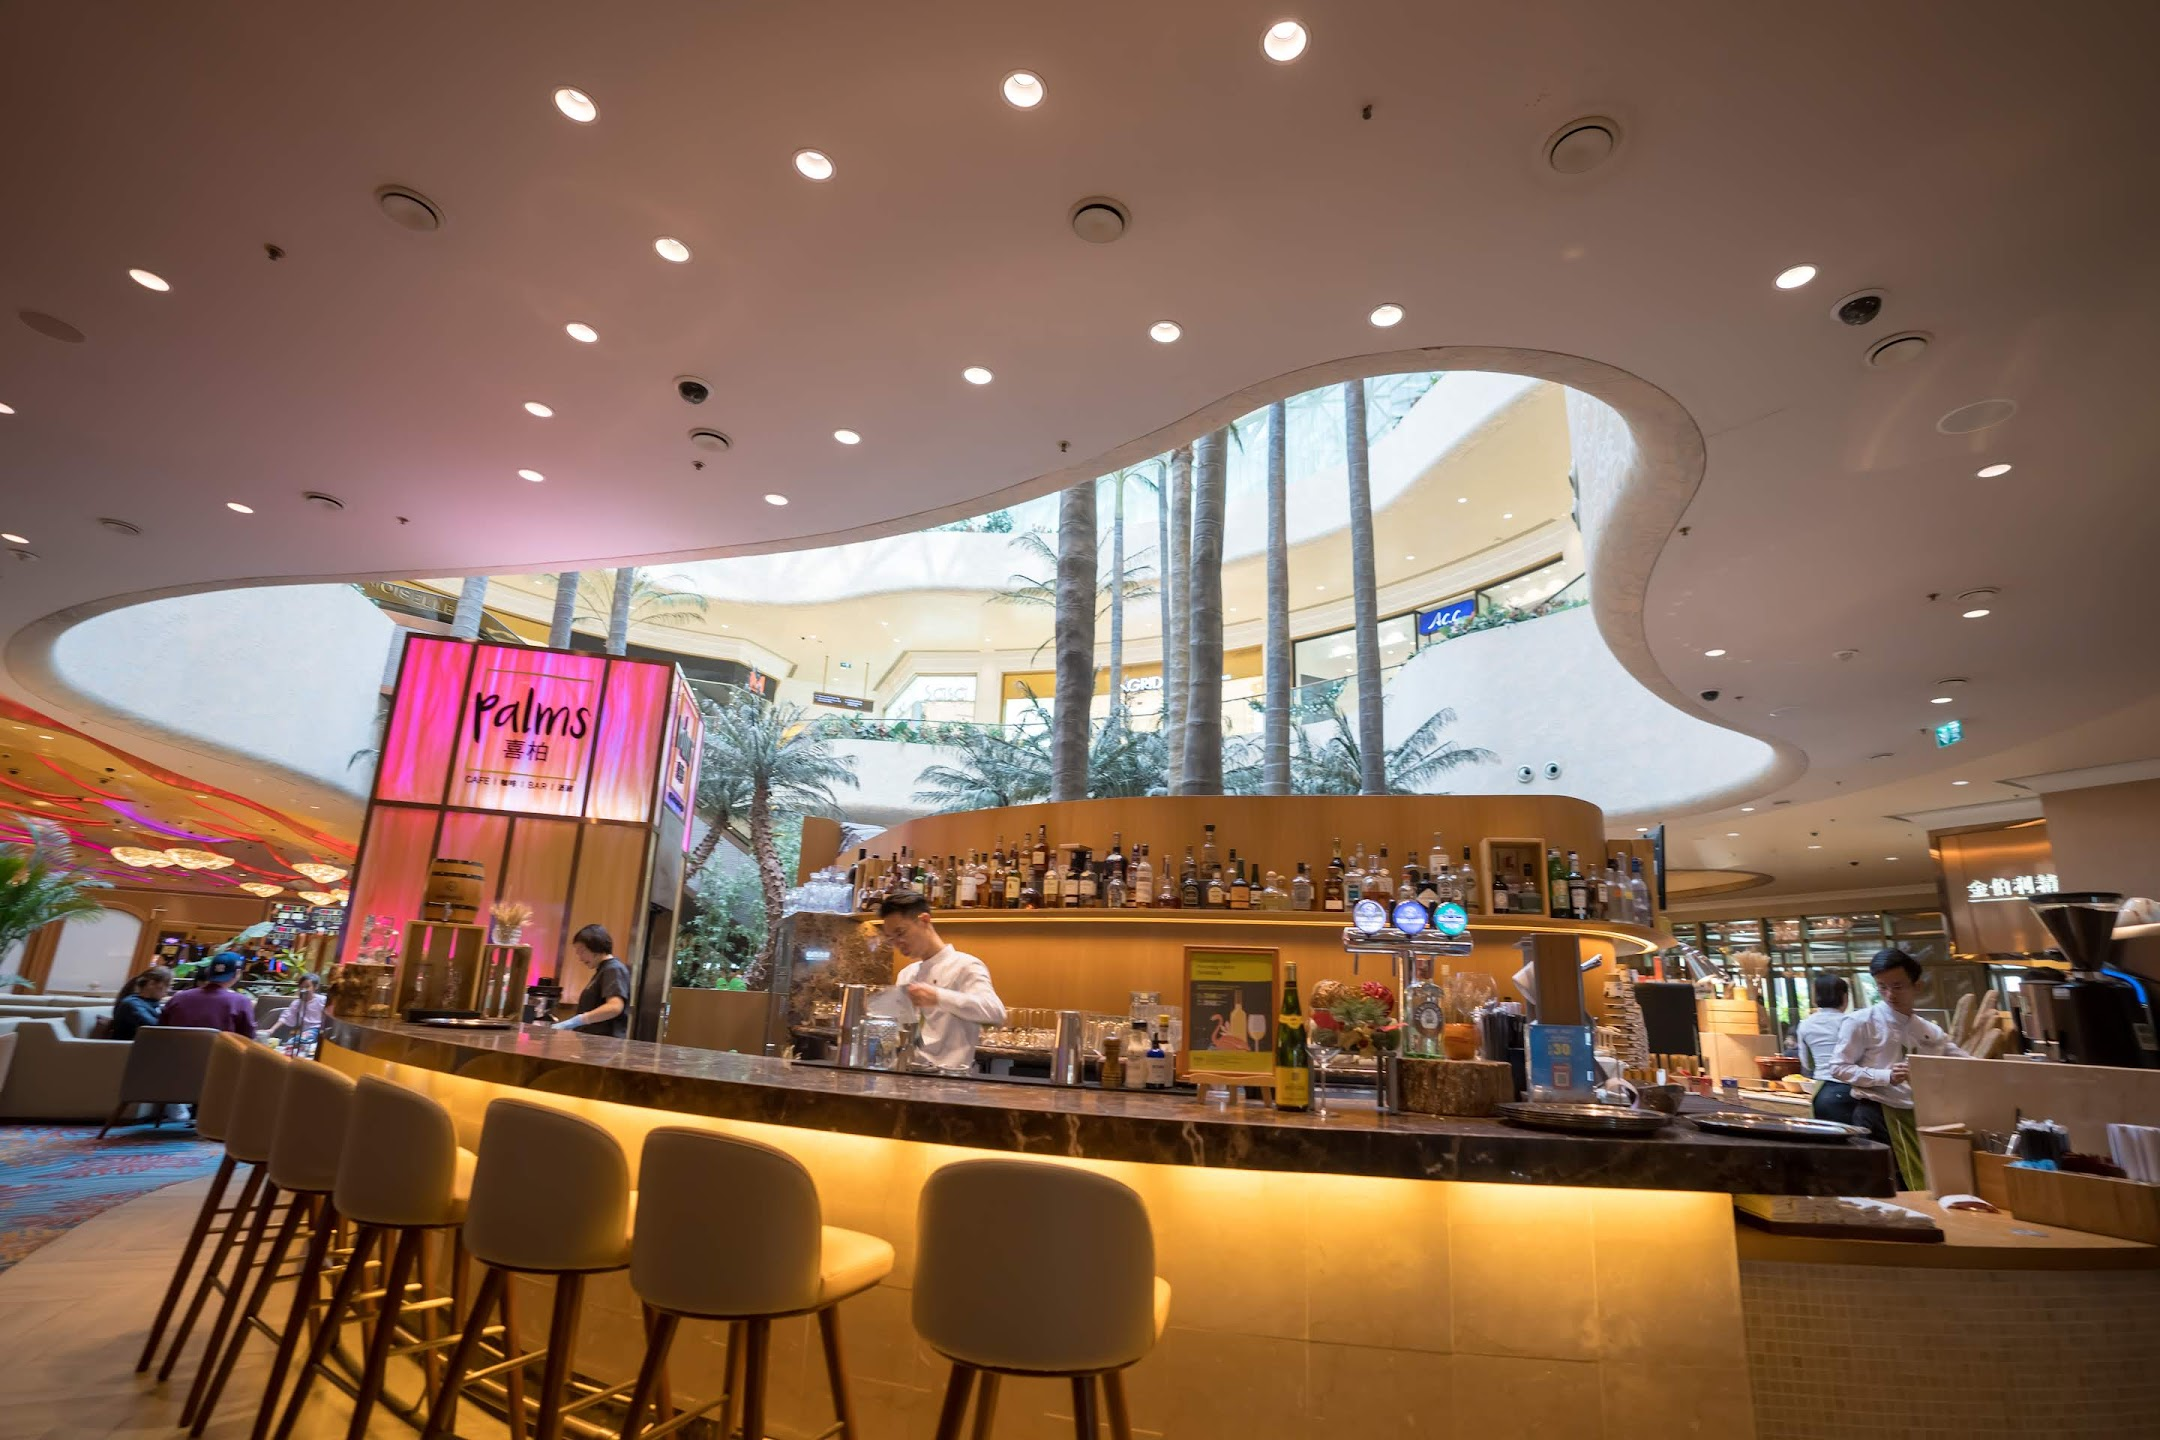 Sands Cotai Central Palms Café and Bar1